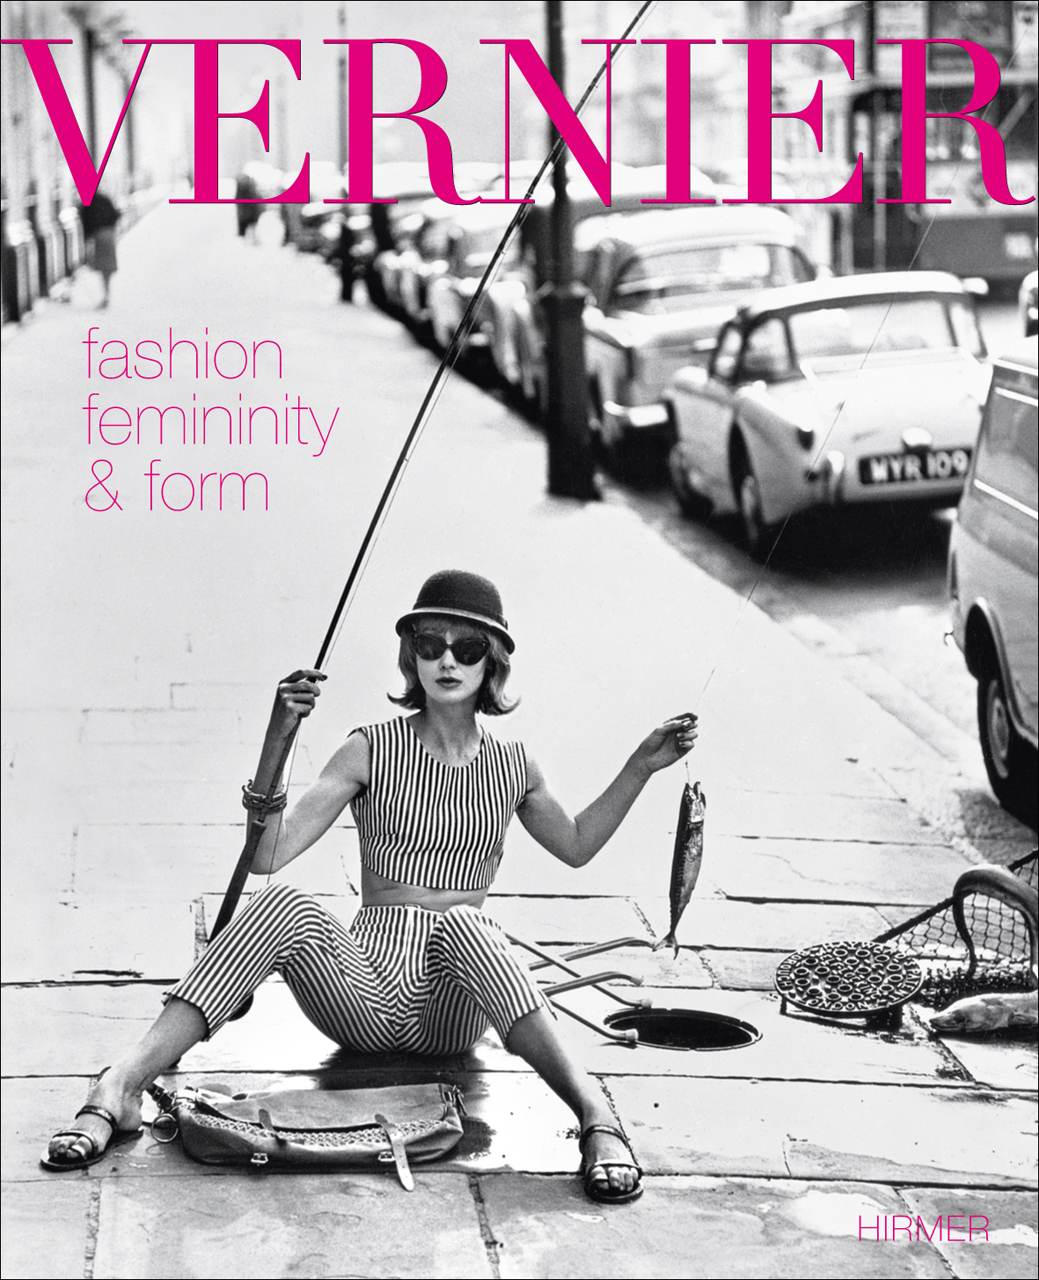 Vernier: Fashion, Femininity and Form